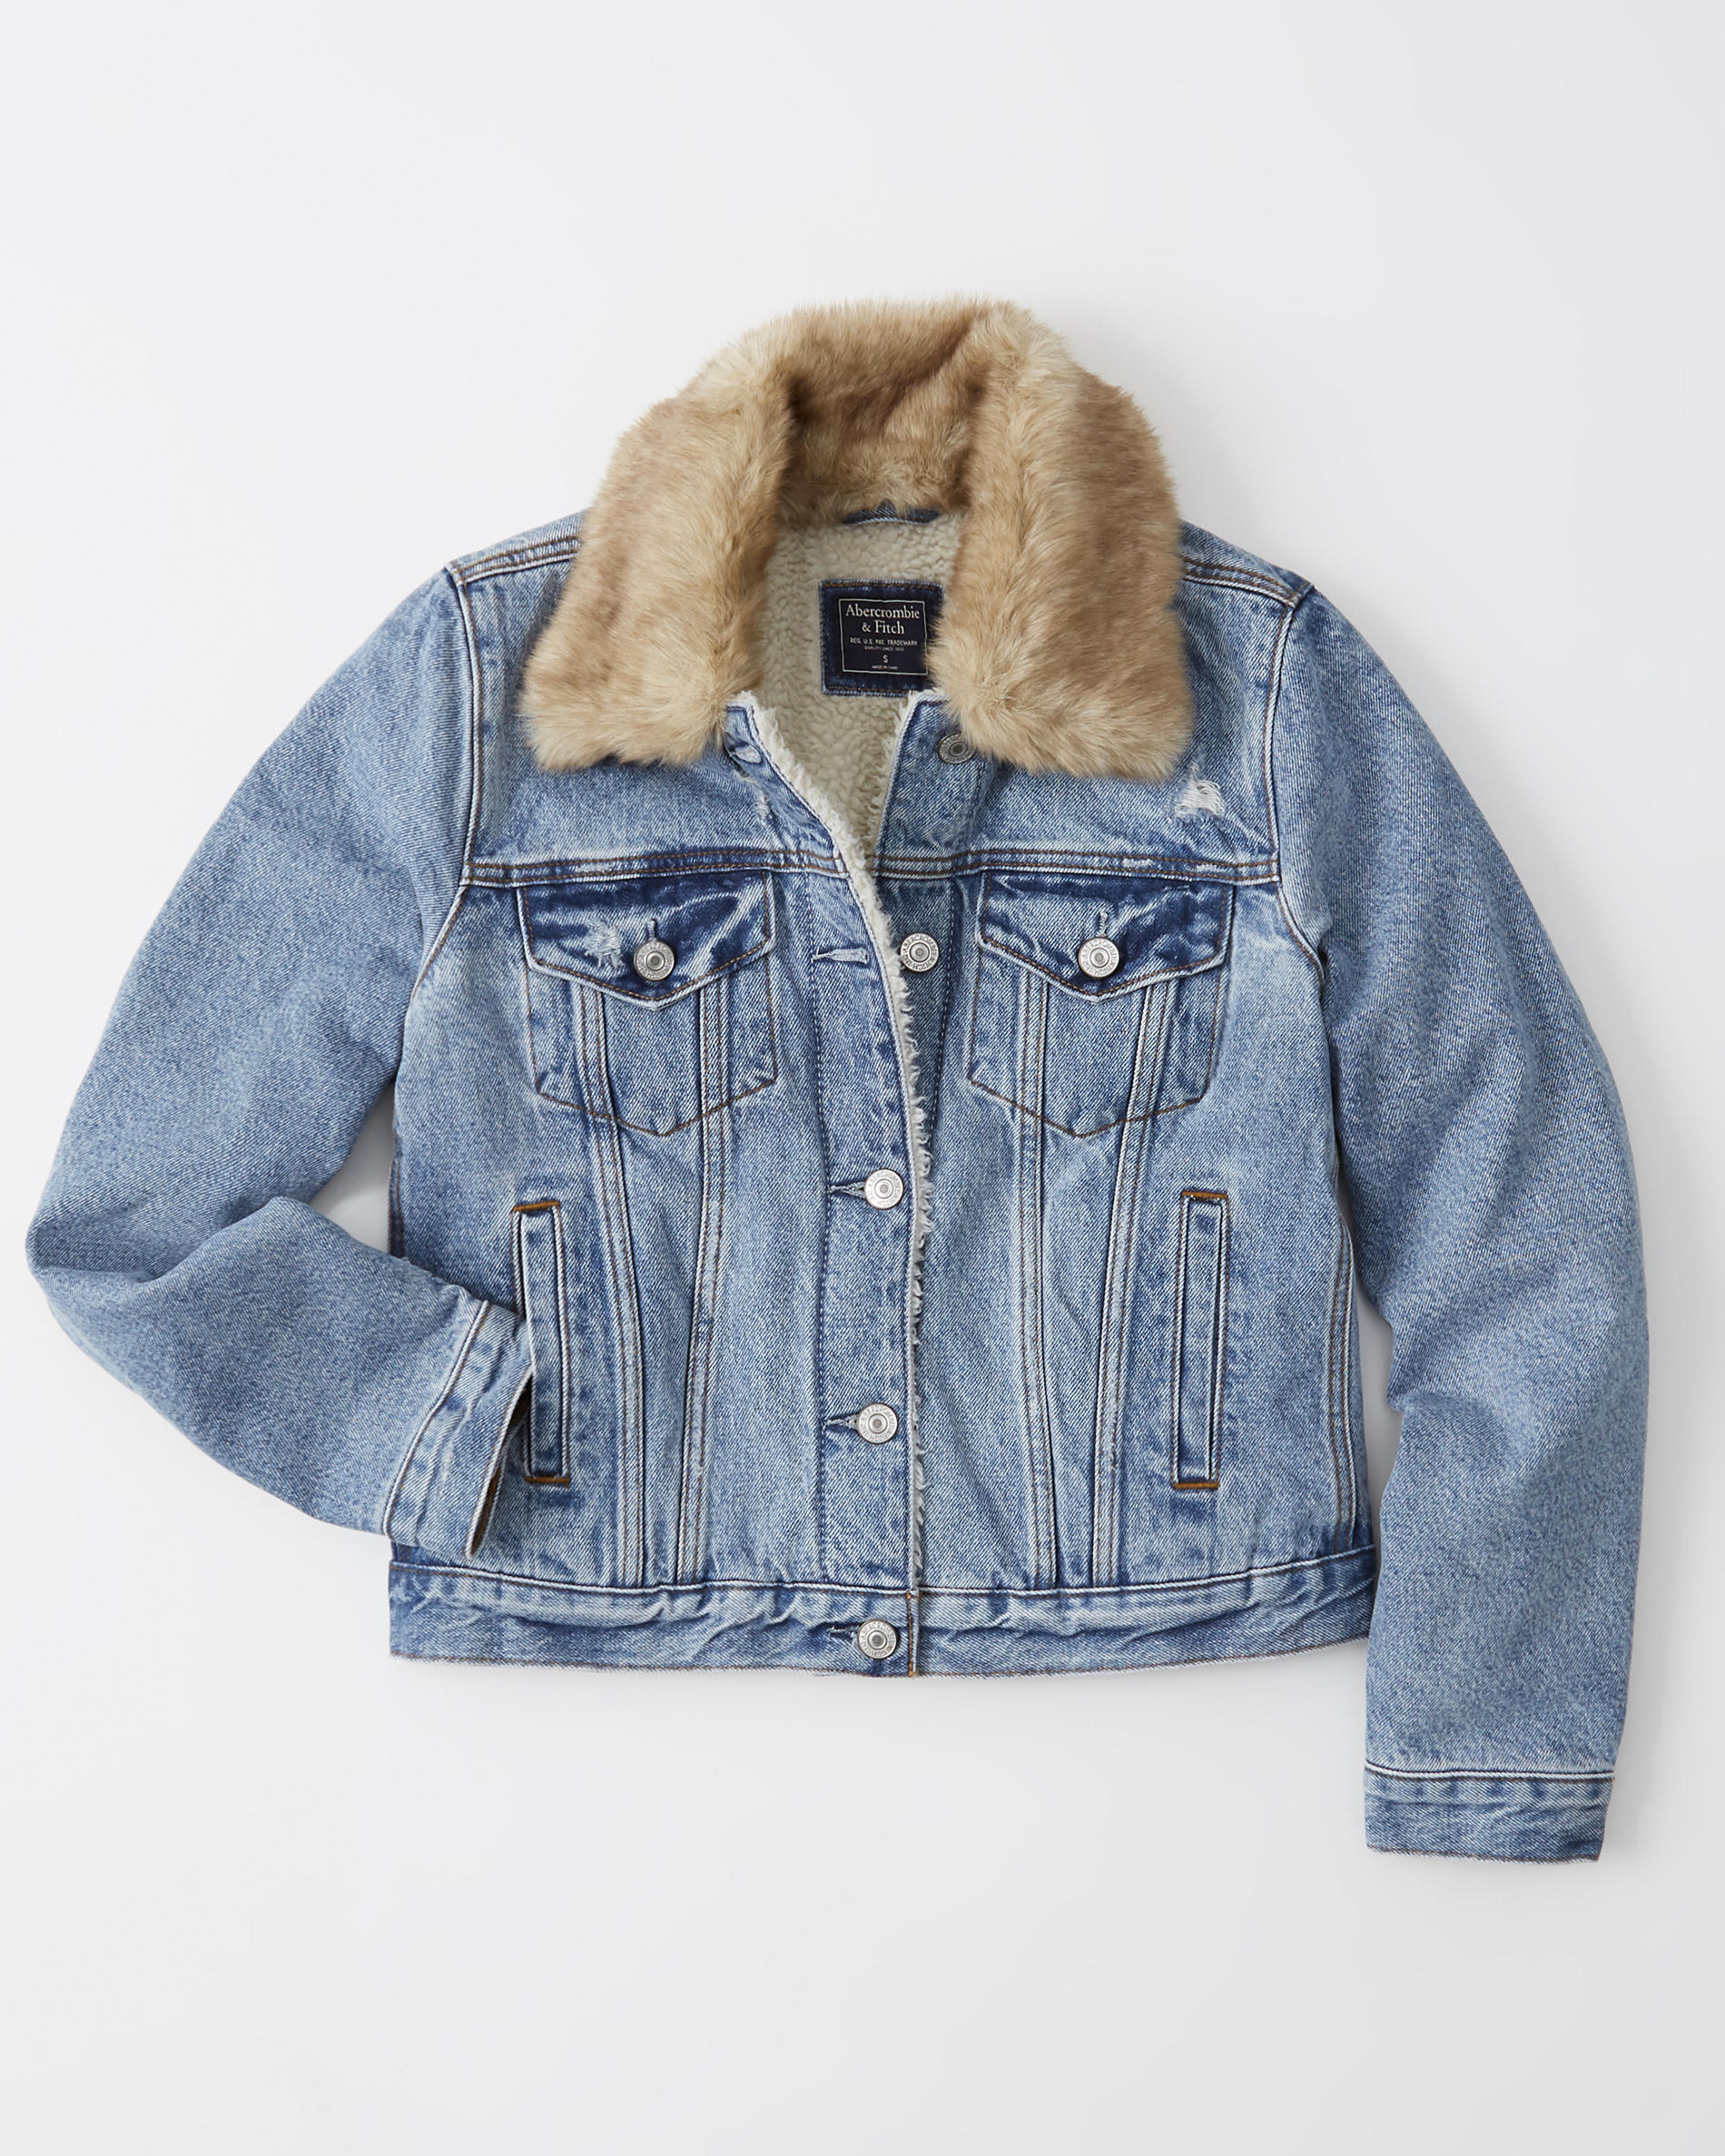 Classic Sherpa Denim Jacket